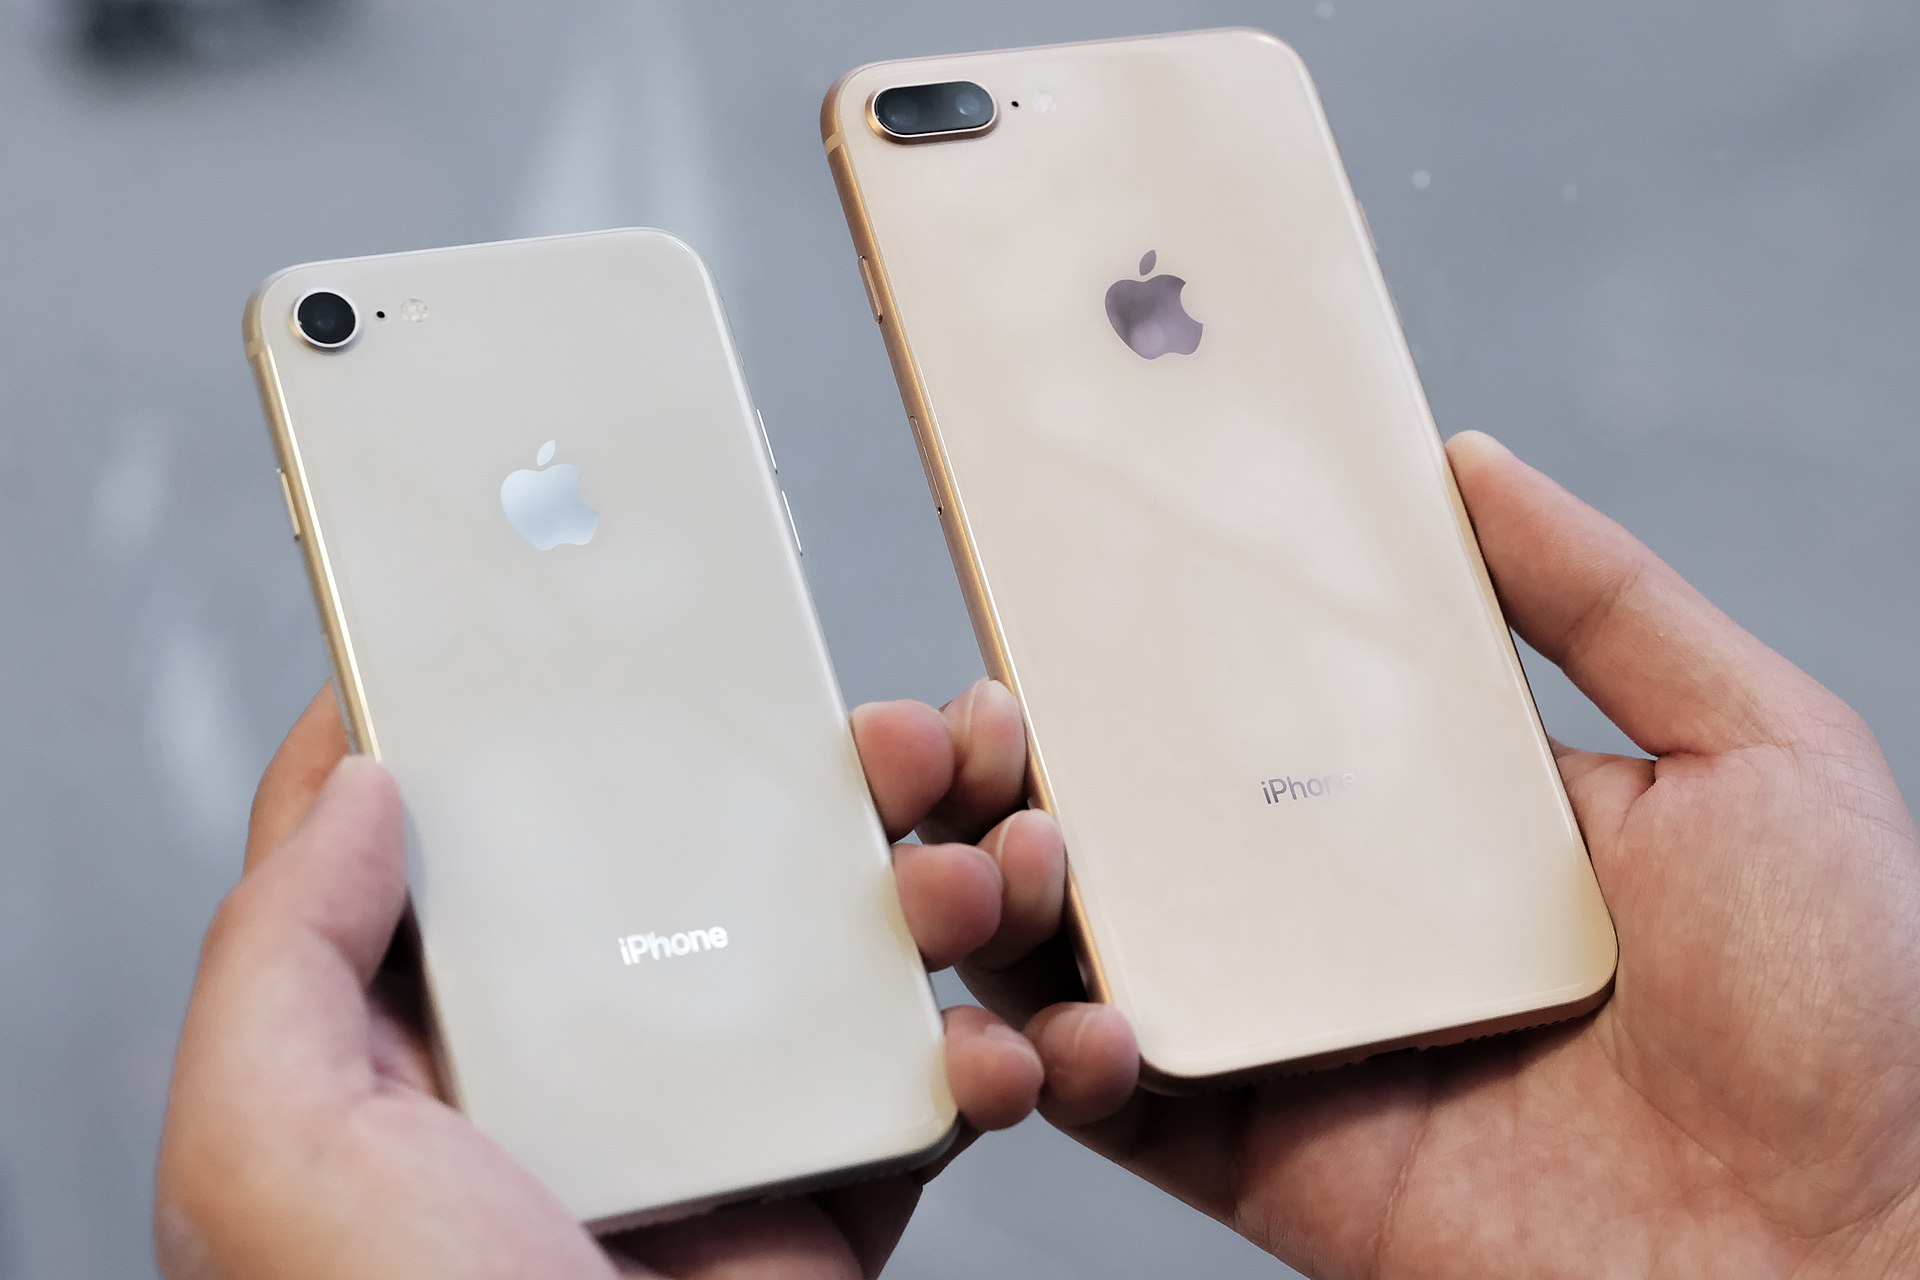 Apple iPhone 8 Plus, iPhone X, Apple iPhone 7 Plus, iPhone 5, Smartphone, iOS, , Apple, iPhone 6S, iPhone SE, iphone 8 plus, mobile phone, gadget, communication device, electronic device, product, smartphone, portable communications device, product, telephone